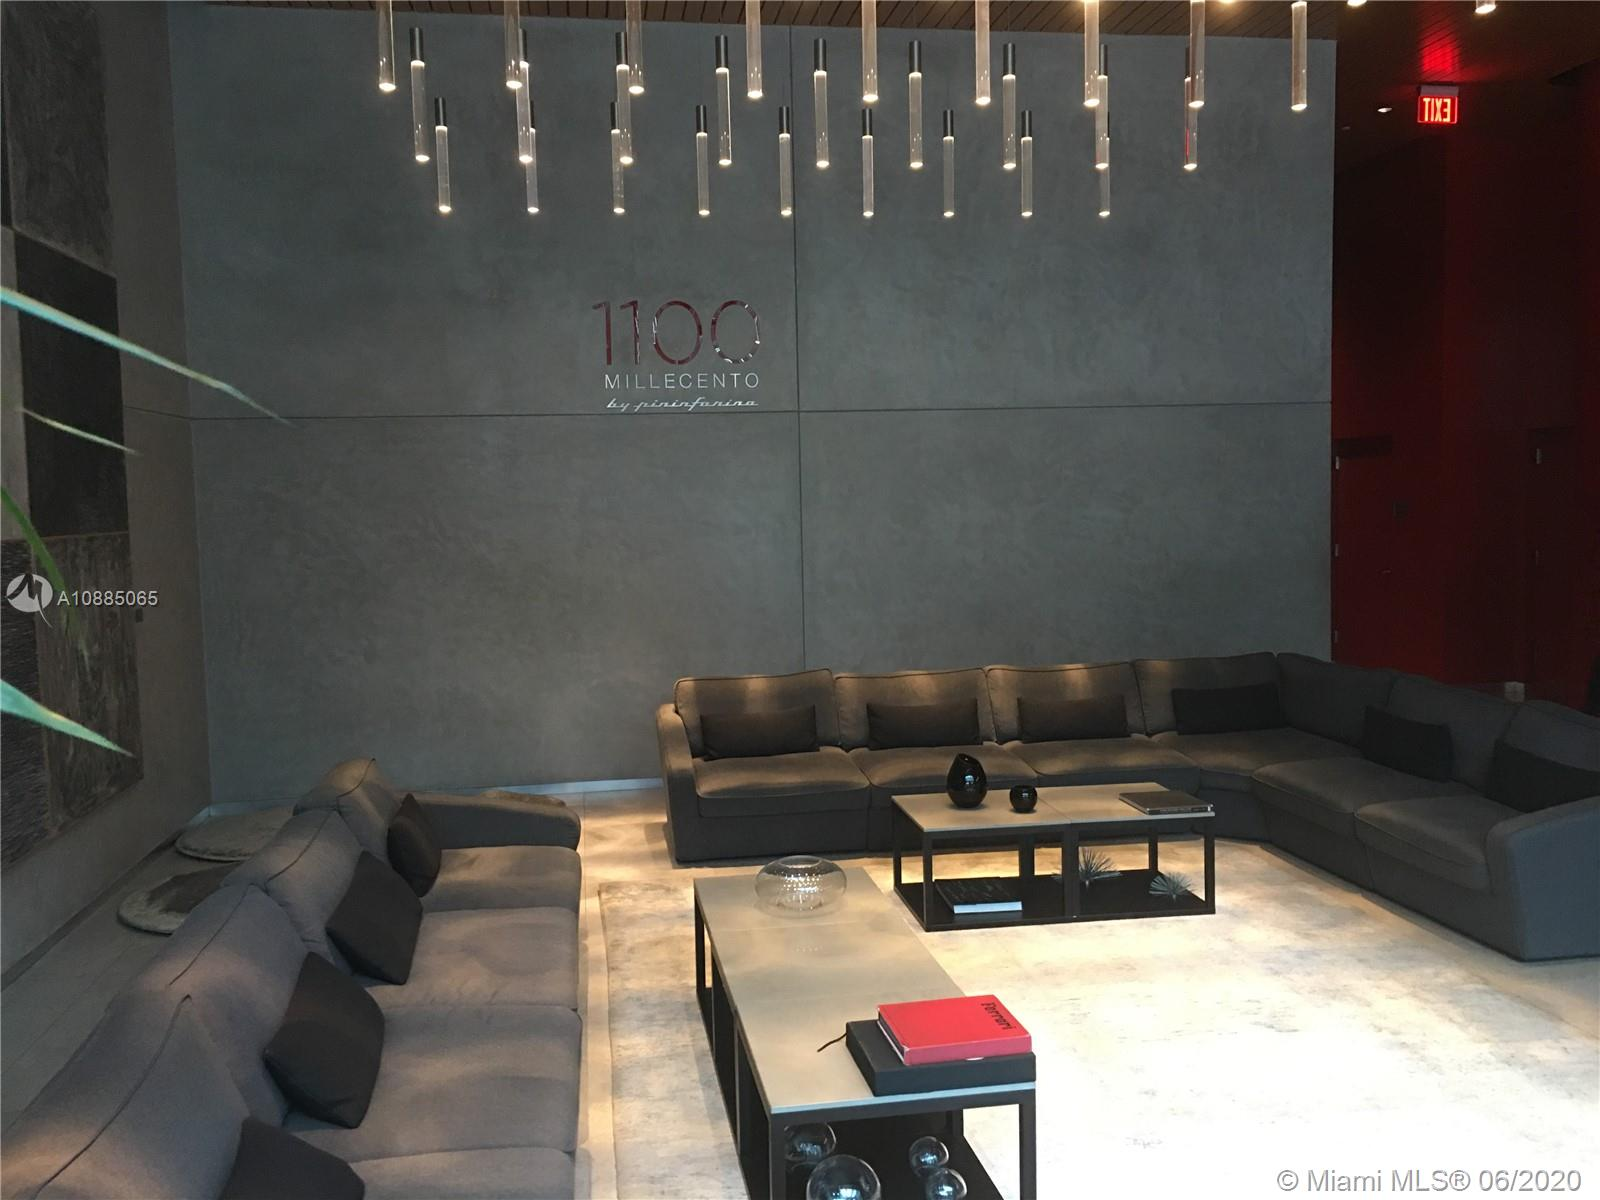 BRAND NEW STUDIO IN THE HEART OF BRICKELL. ENJOY ONE OF A KIND NEW PIRINFARINA DESIGN BUILDING. GREAT AMENITIES. STEPS FROM SHOPS AND RESTAURANTS.